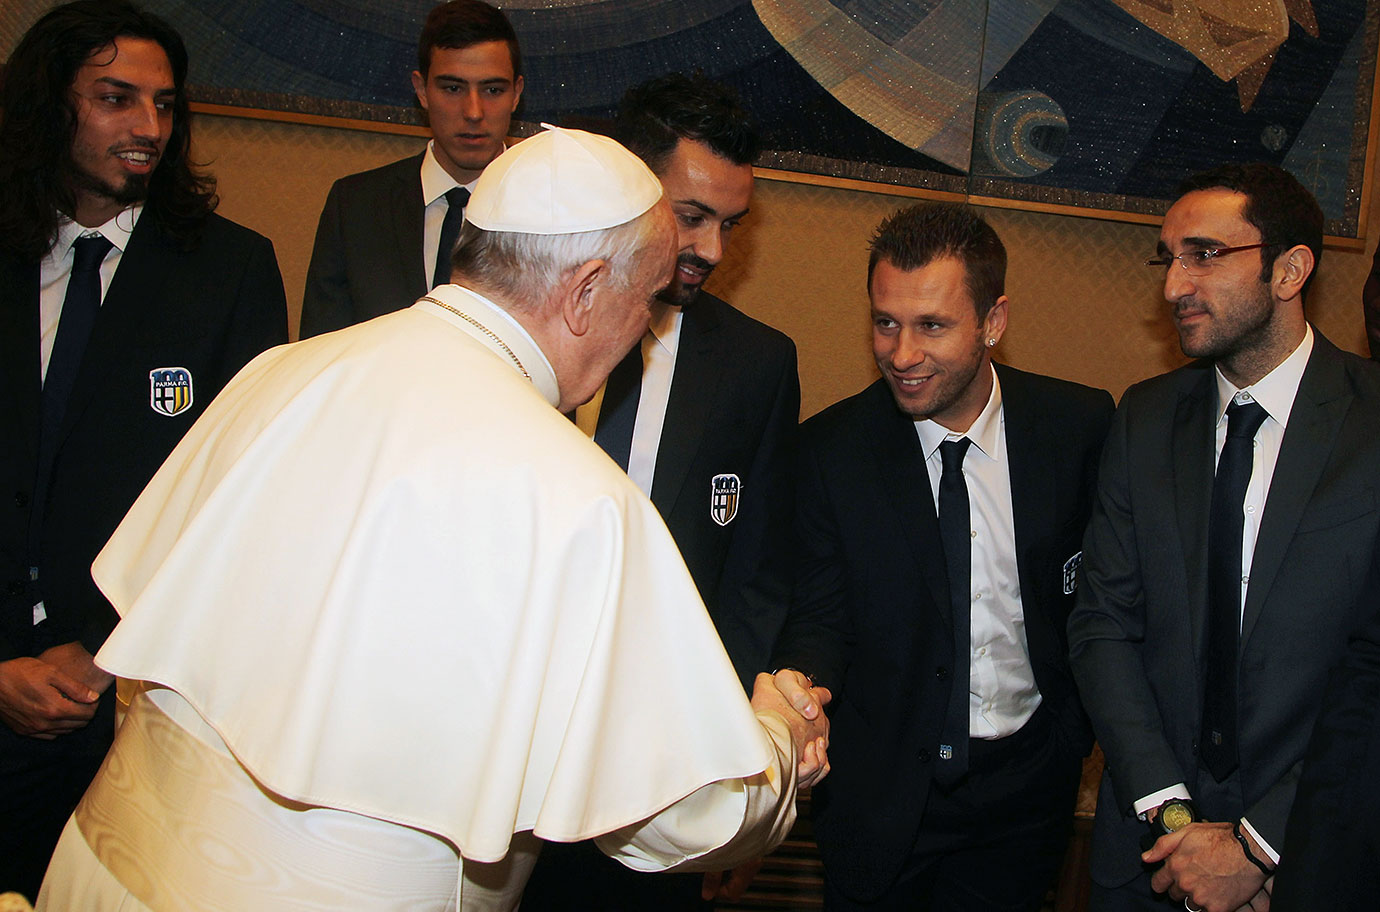 Pope Francis shakes hands with Antonio Cassano of FC Parma during an audience at The Vatican on February 1, 2014 in Vatican City.